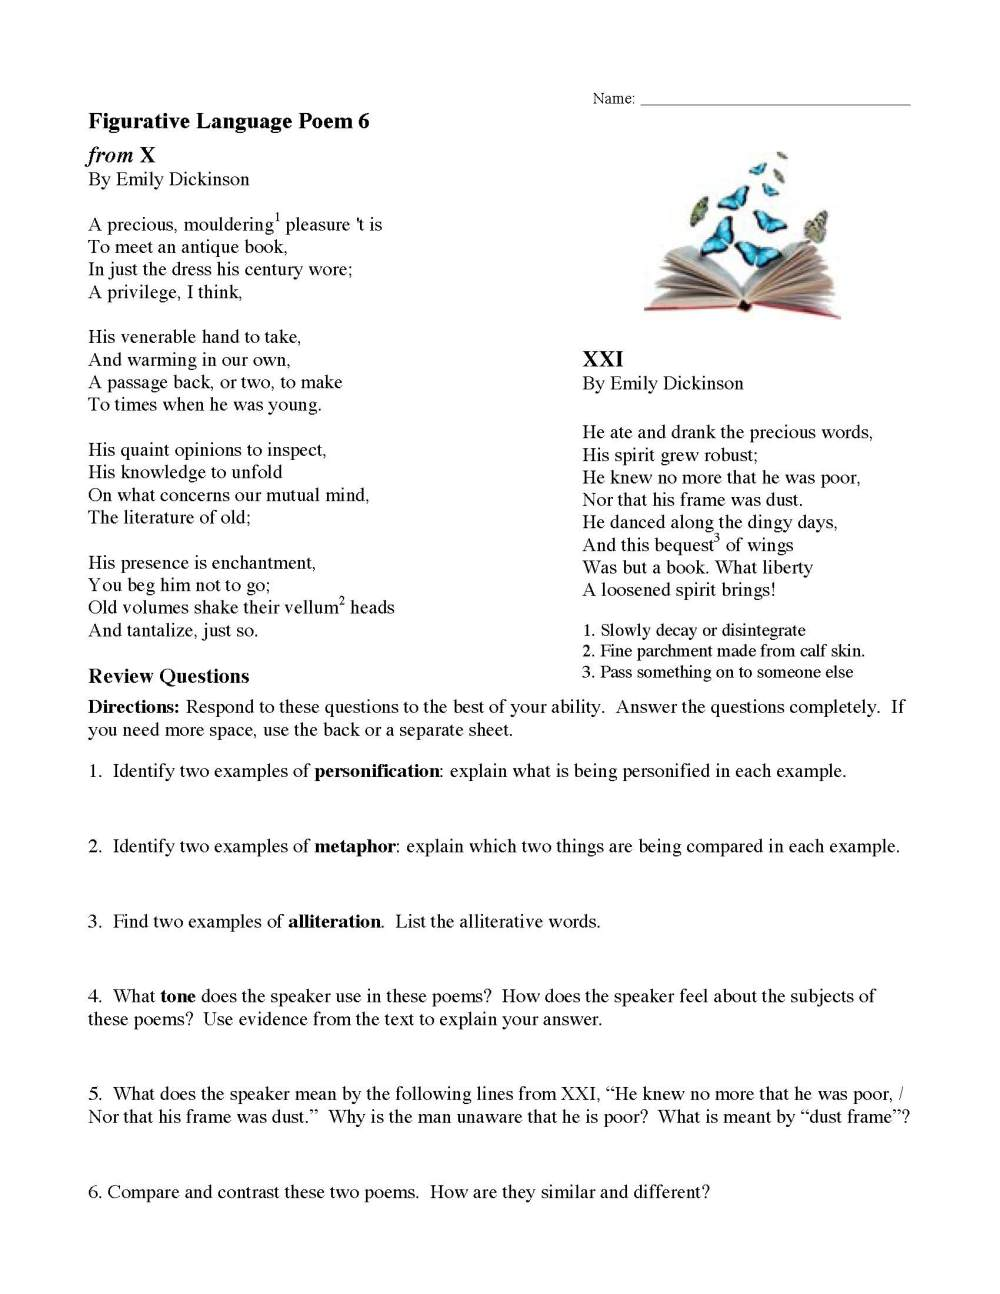 medium resolution of Figurative Language Poem 6: from X and XXI by Emily Dickinson   Preview